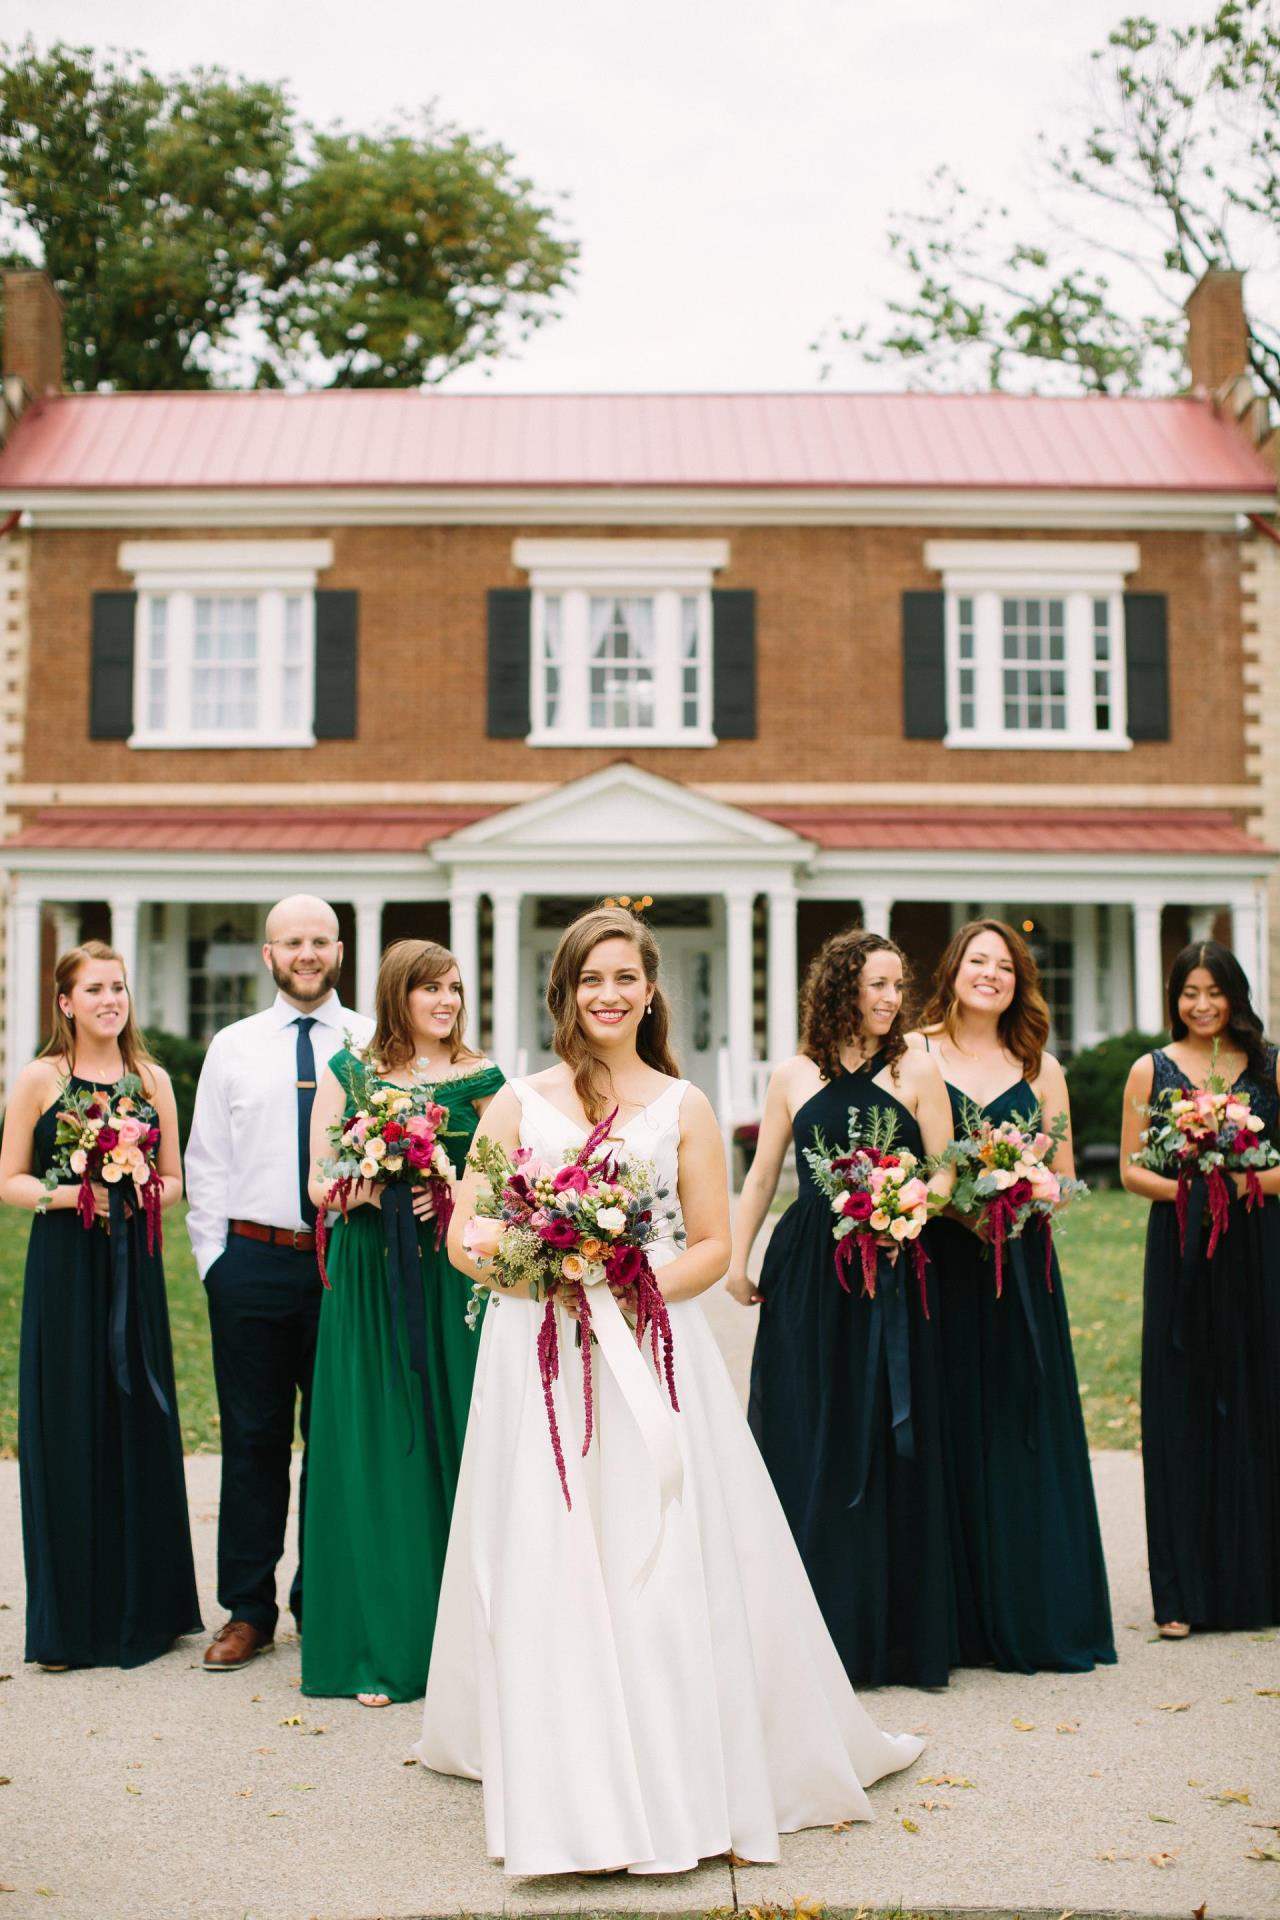 Win a Dream Wedding at Ravenswood Mansion | News List | City of ...